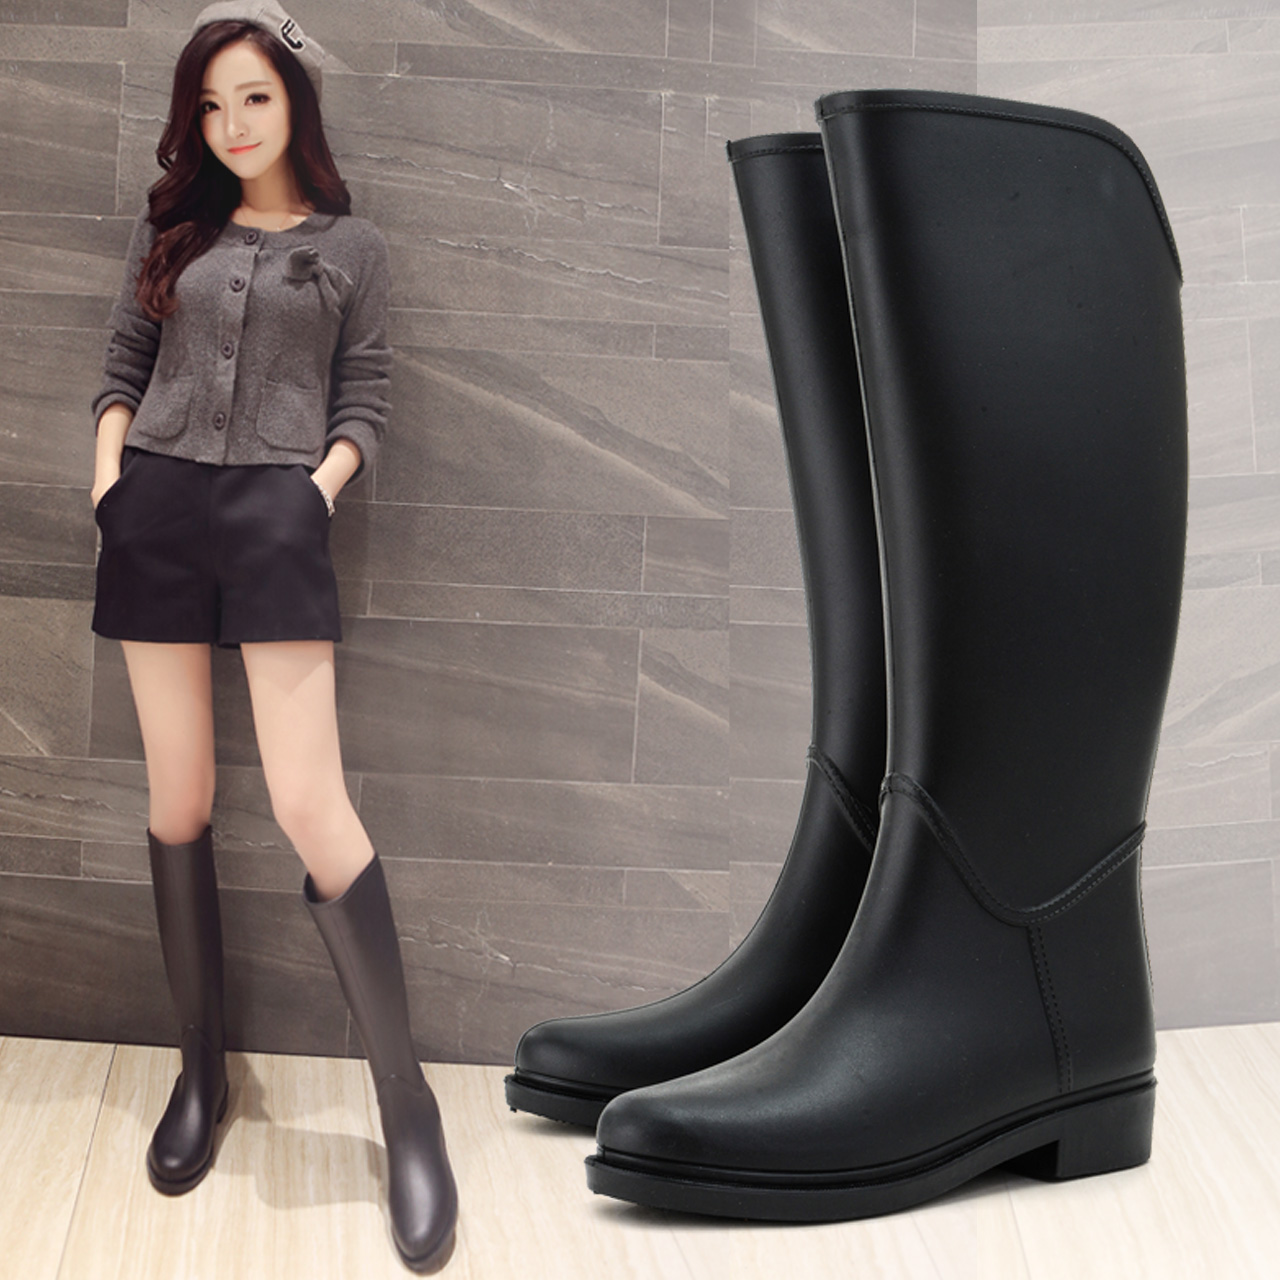 2017 New Fashion Women Knee-High Rain Boots Spring and Autumn Water Shoes Casual Rubber Rain Shoes Boots<br><br>Aliexpress